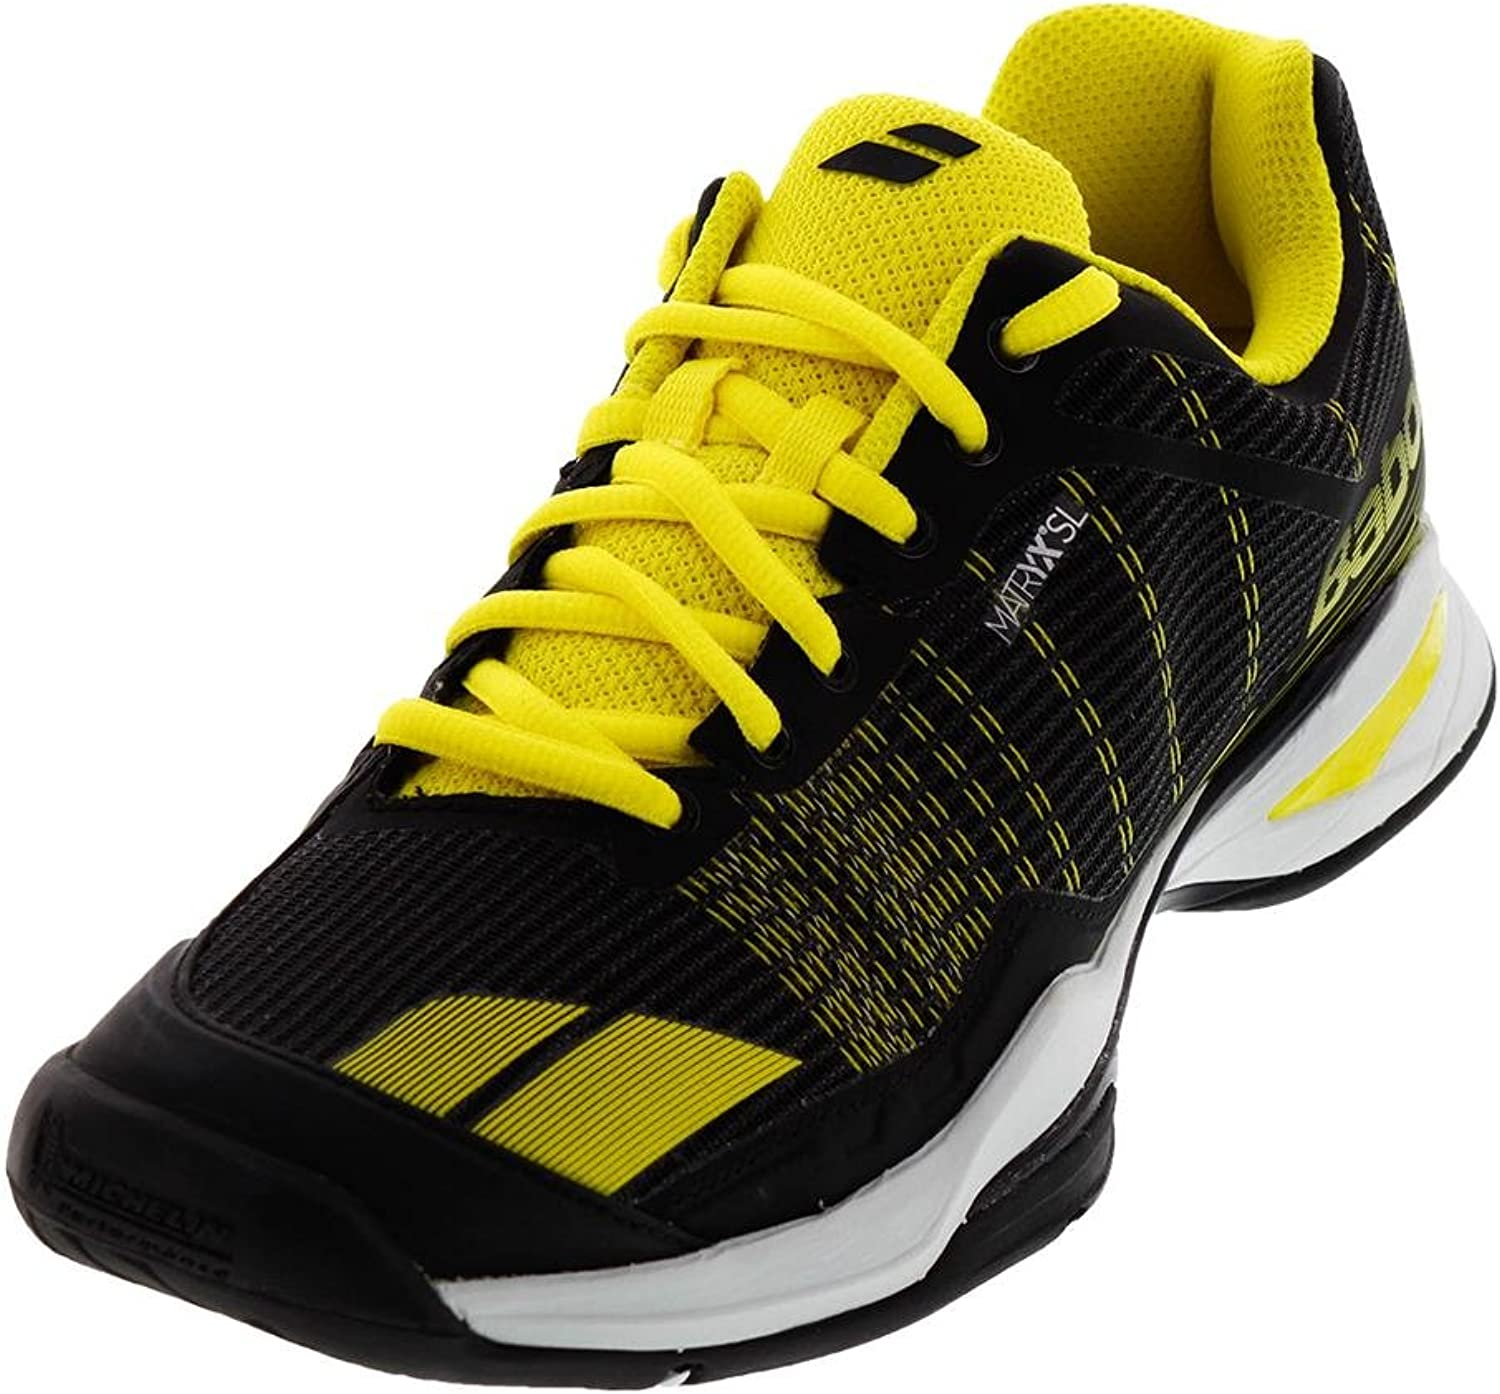 Herren Tennisschuhe Court All Team Jet Babolat zuos9cea37374